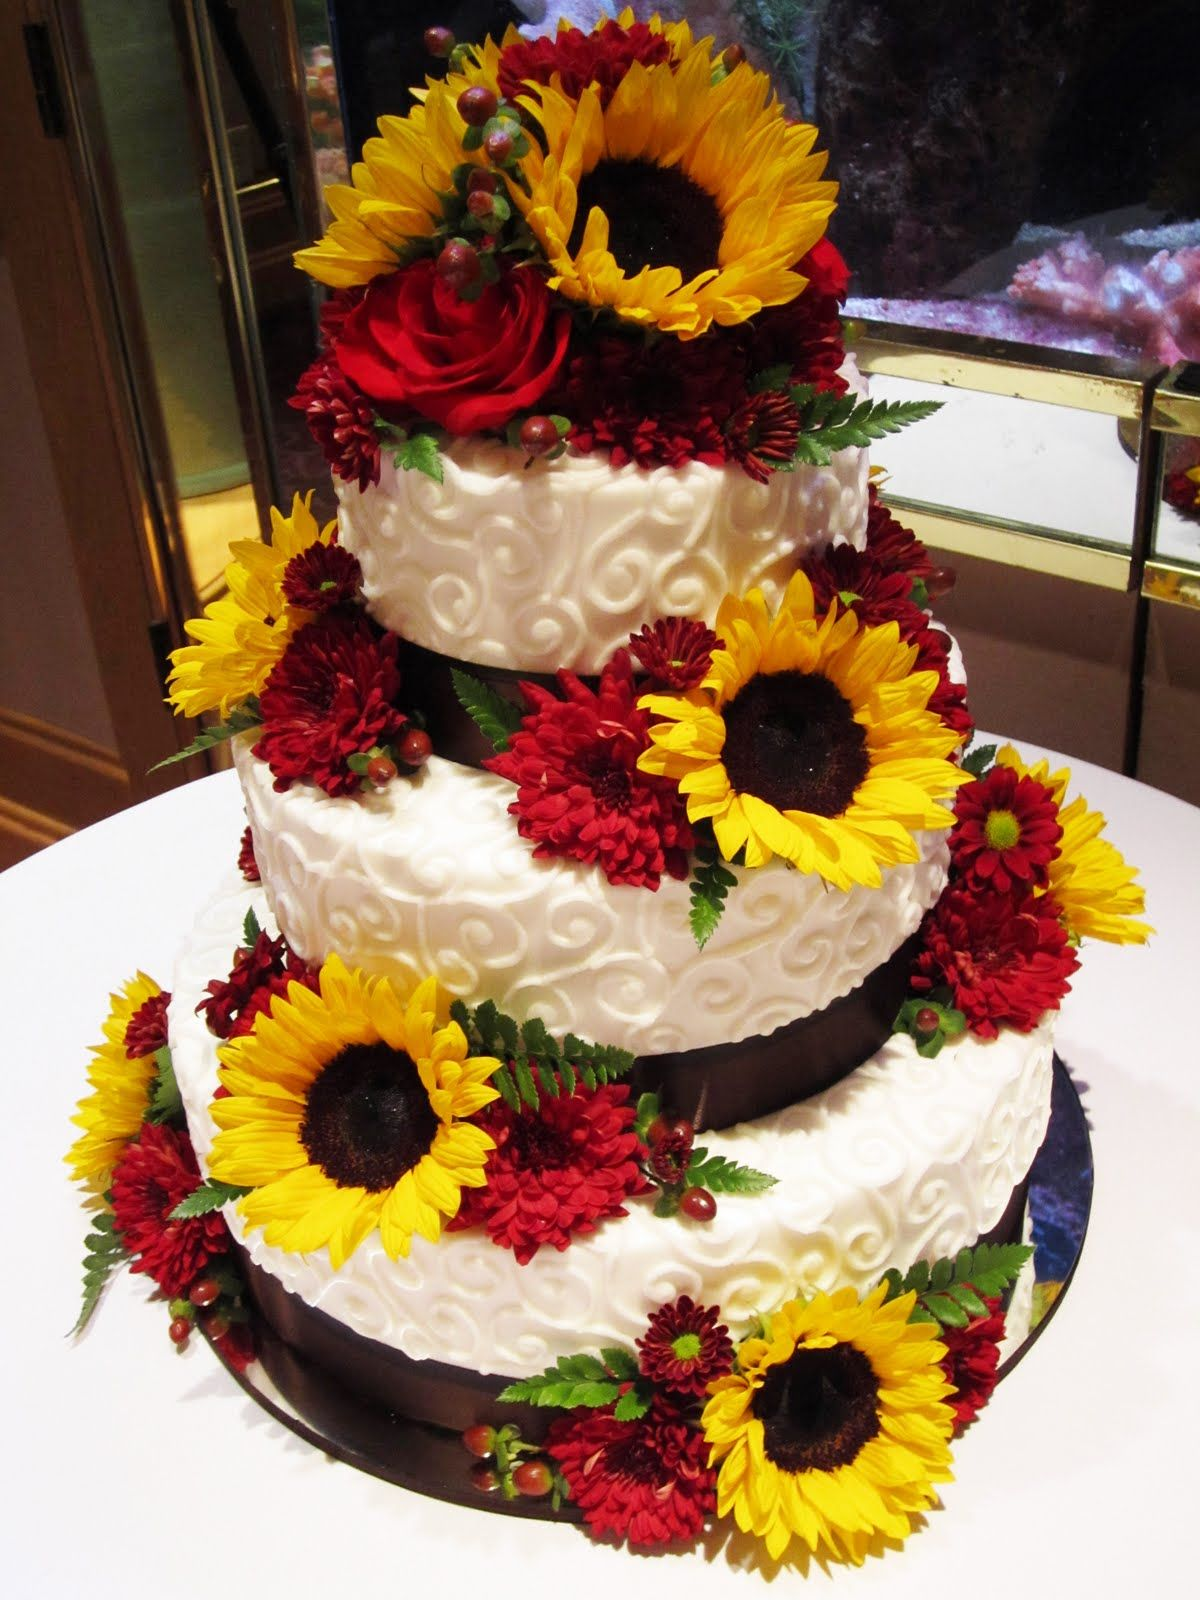 sunflowers, wheat, and camo wedding | Cakes by Sarah | Books Worth ...